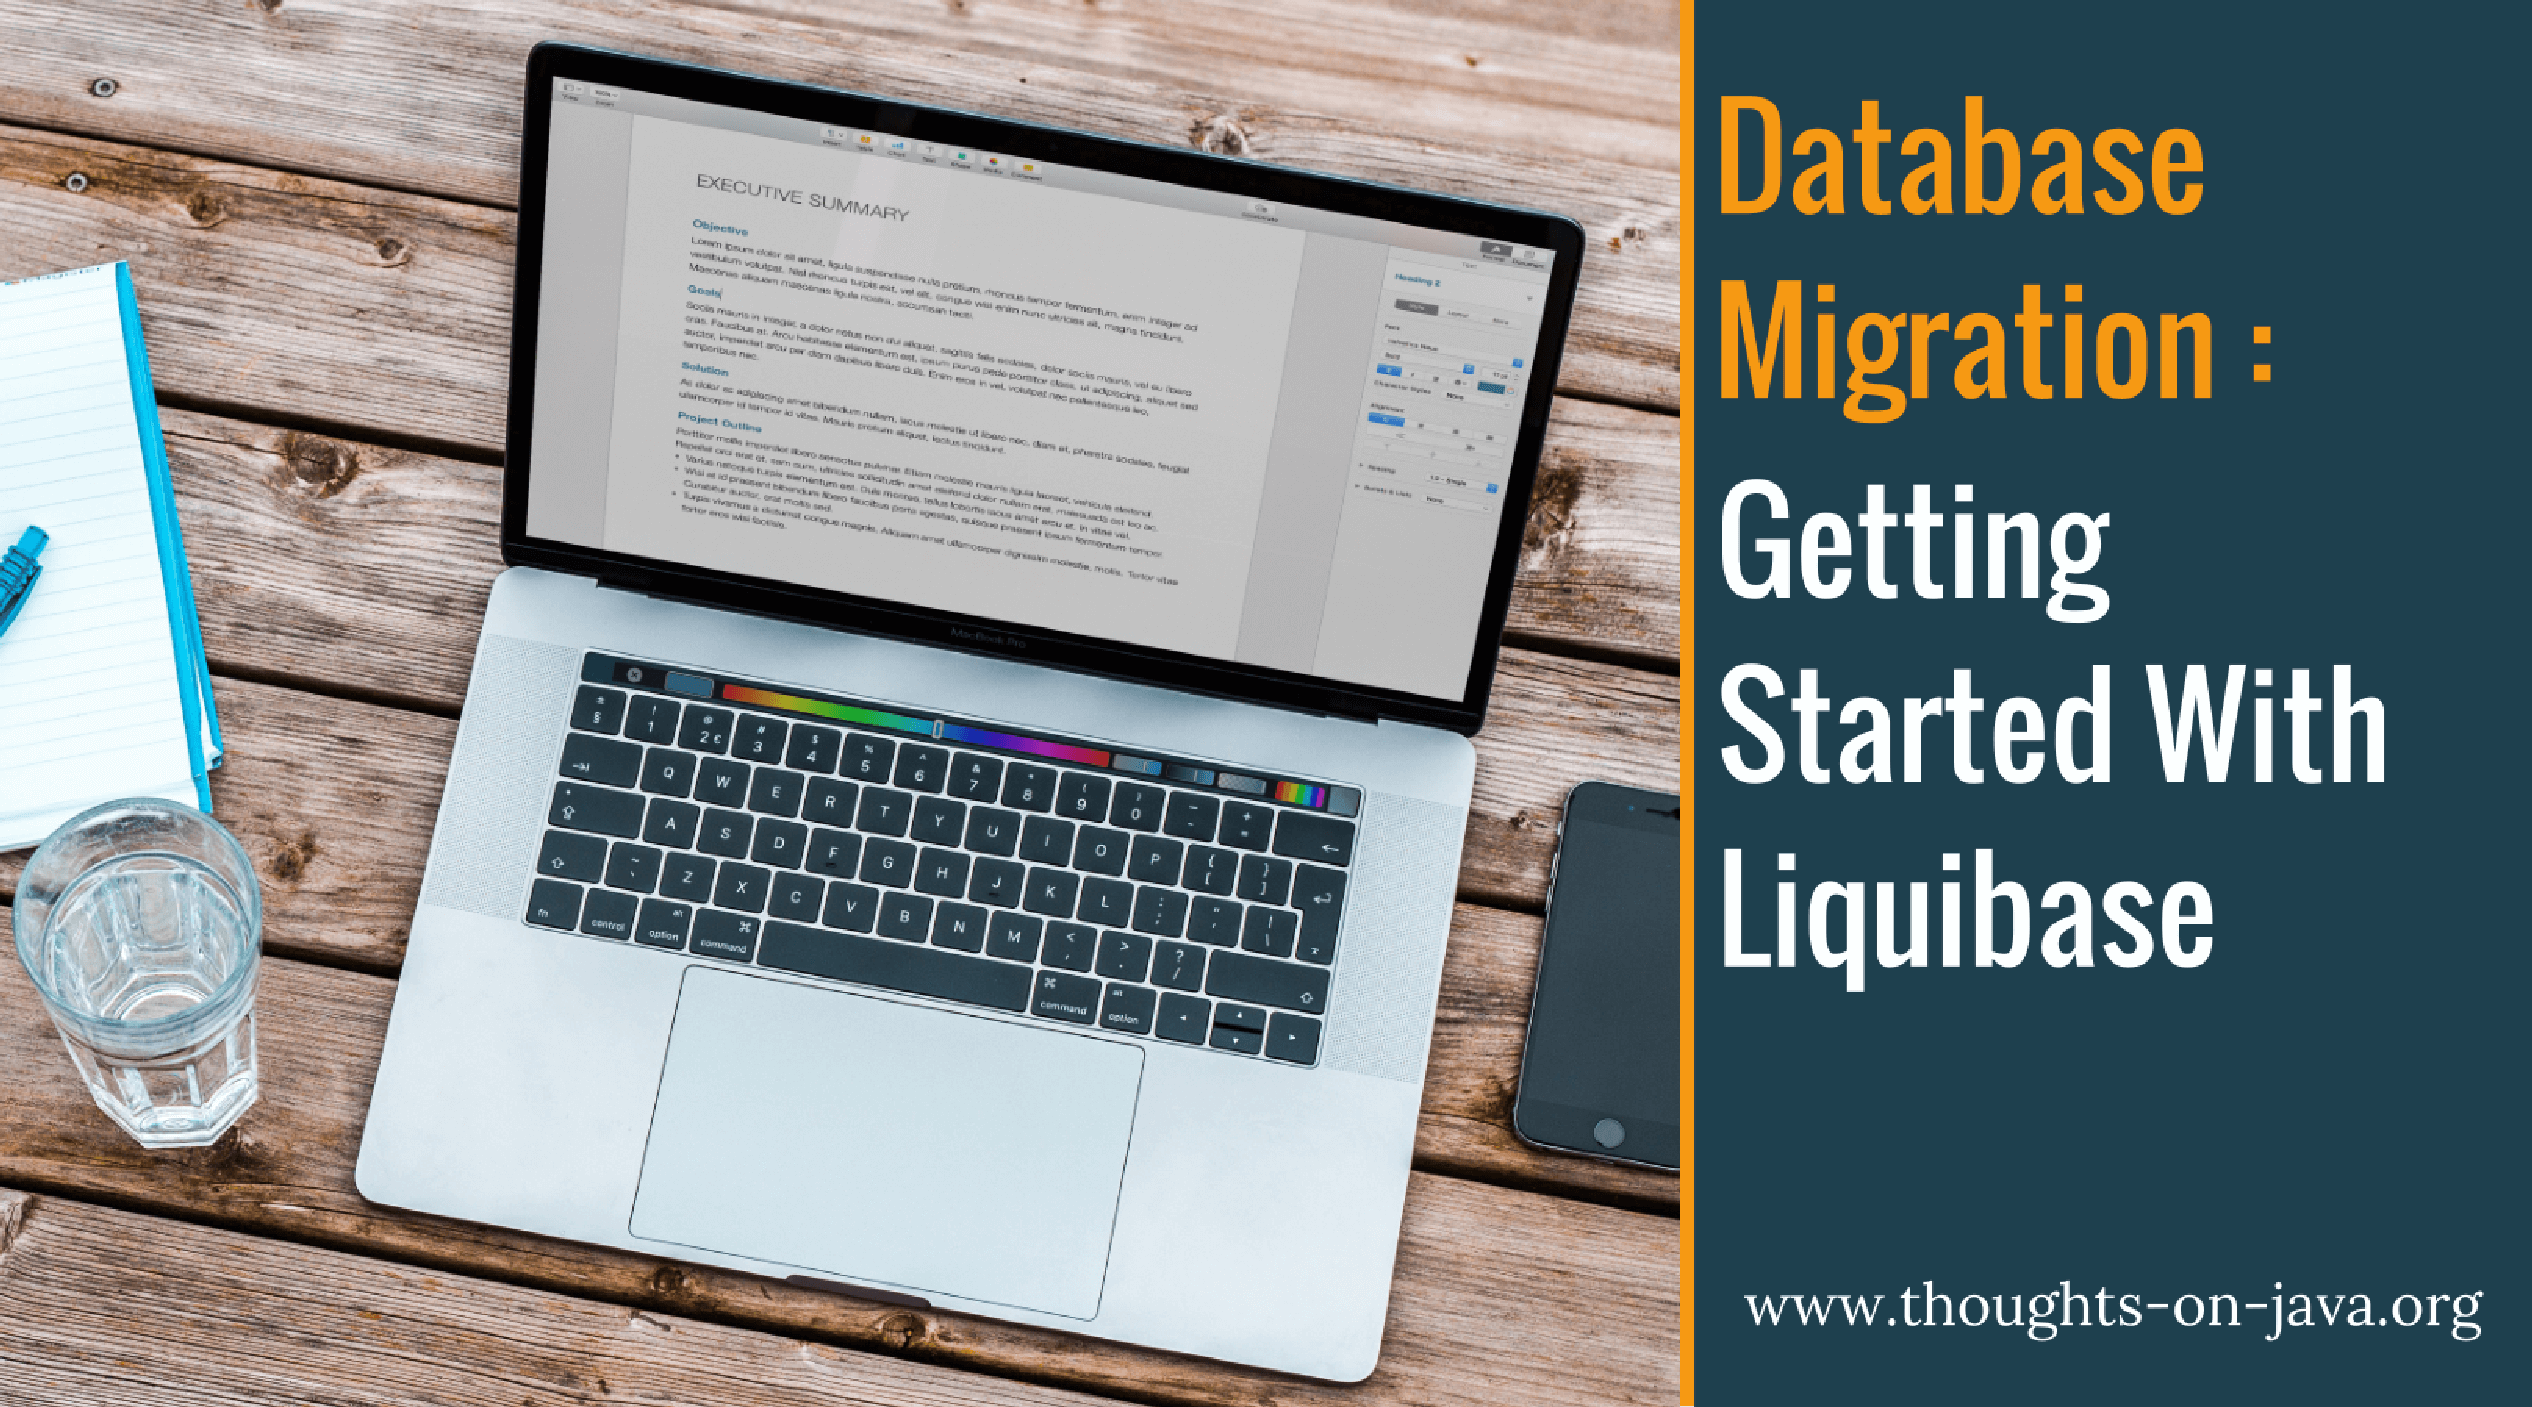 Database Migration with Liquibase